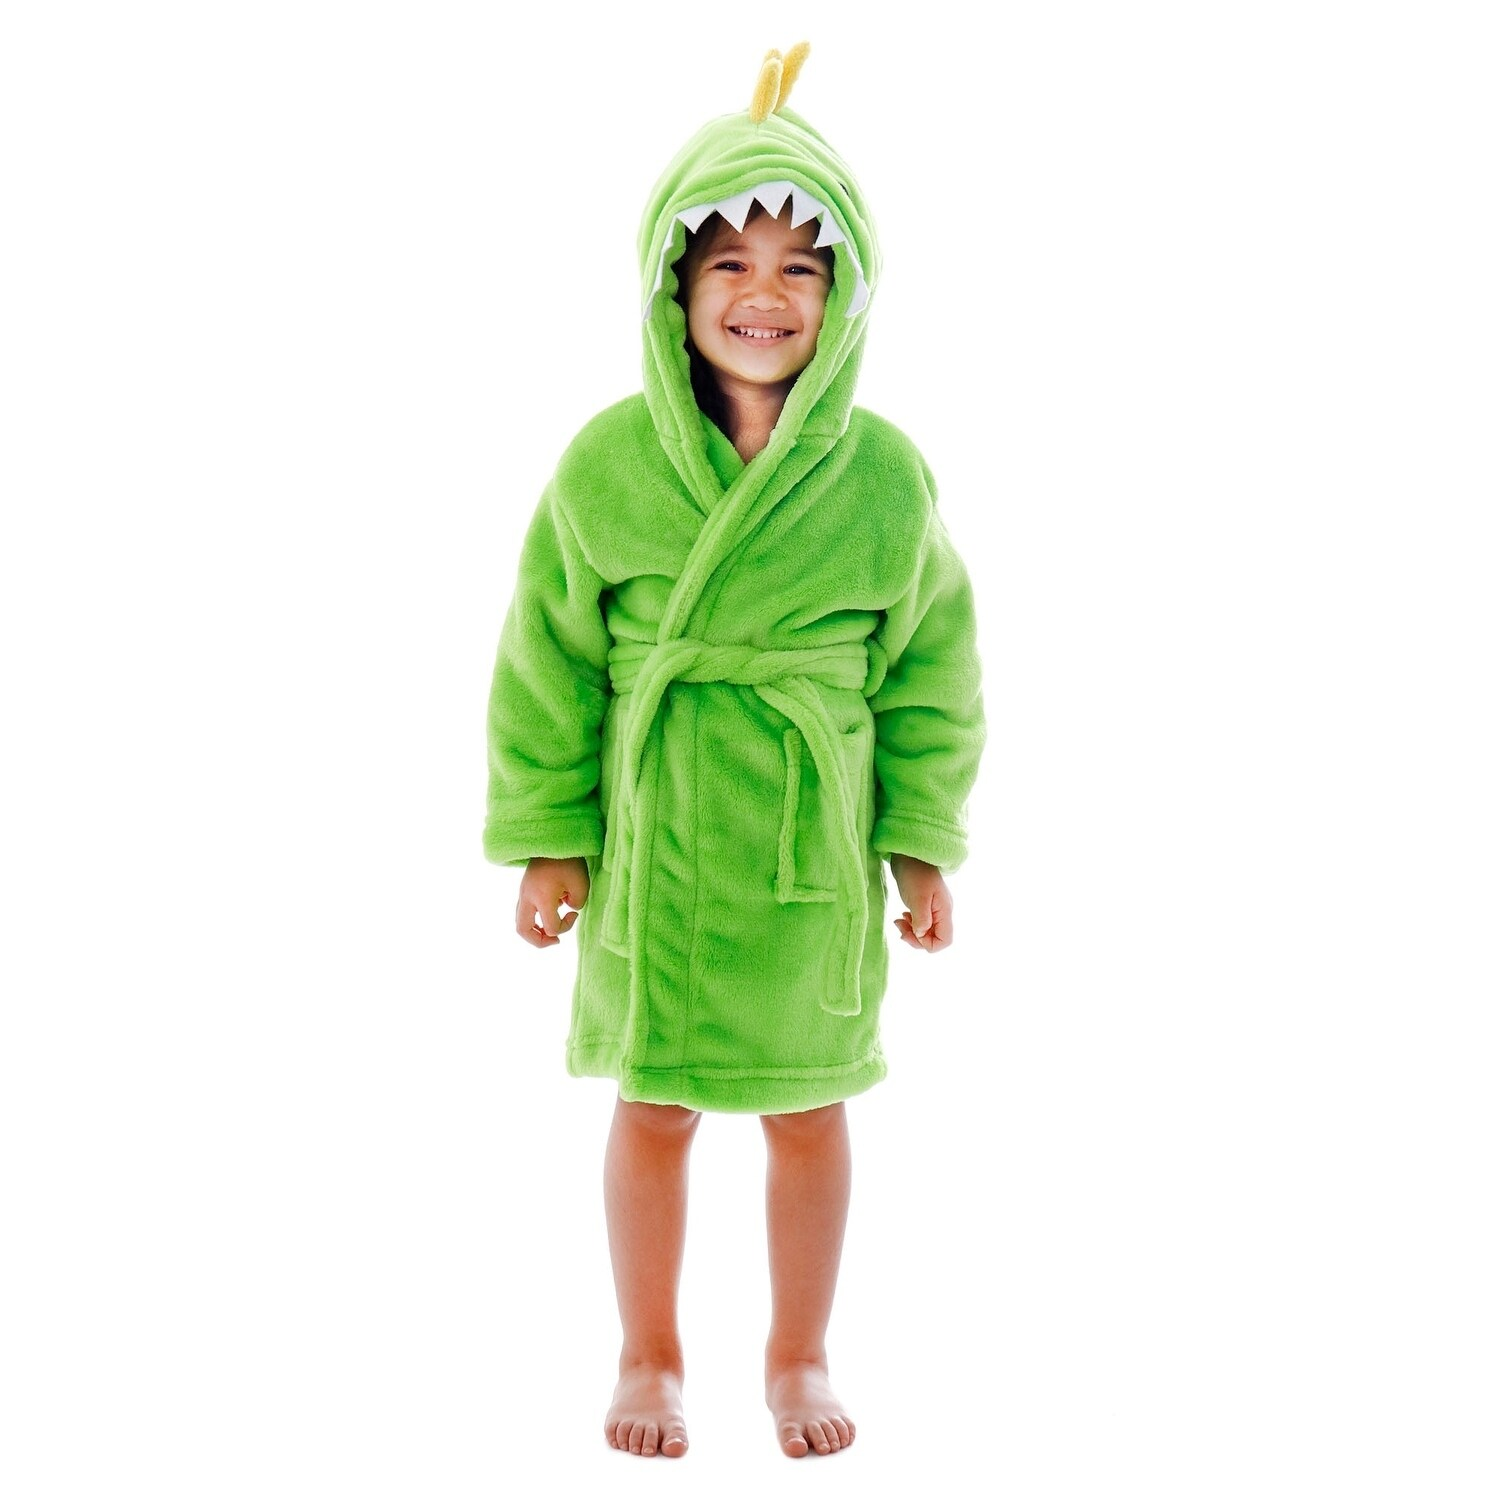 Shop Arctic Paw Animal Adventures Plush Soft Hooded Terry Bathrobe -  Dinosaur - On Sale - Free Shipping Today - Overstock - 18128822 25a6adcaa